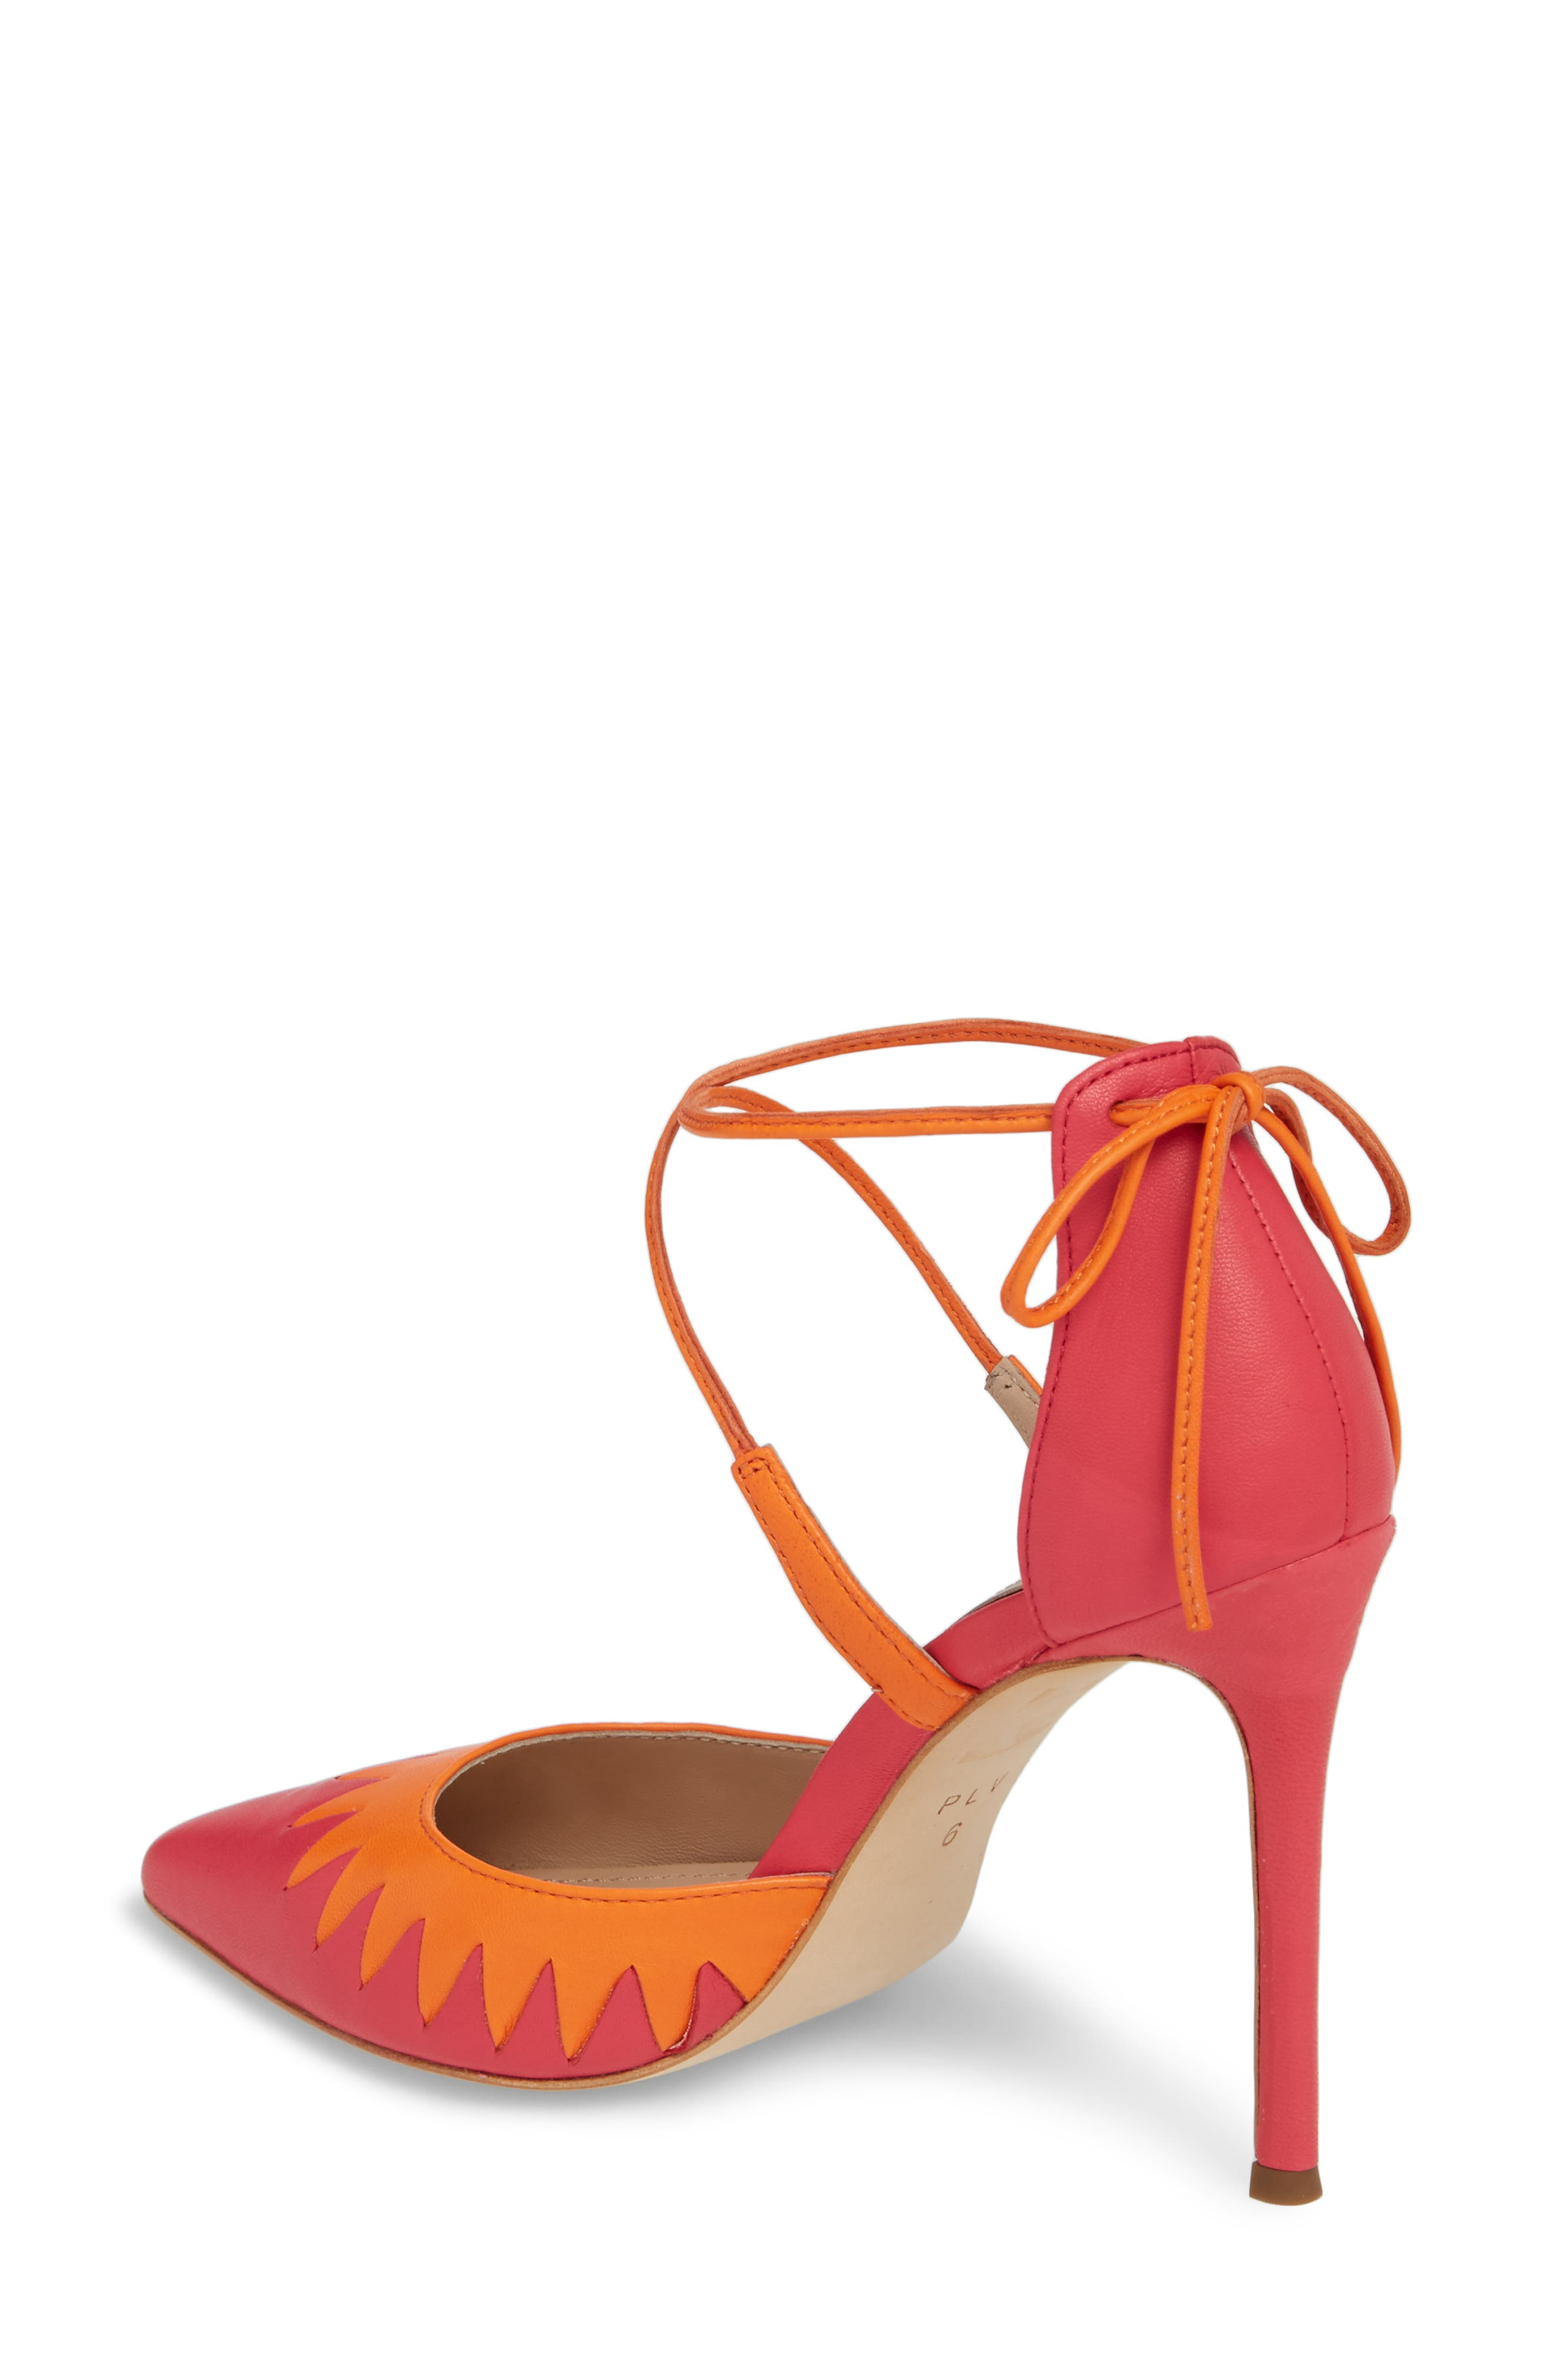 Cenya Pump,                             Alternate thumbnail 2, color,                             Azalea/ Orange Blossom Leather